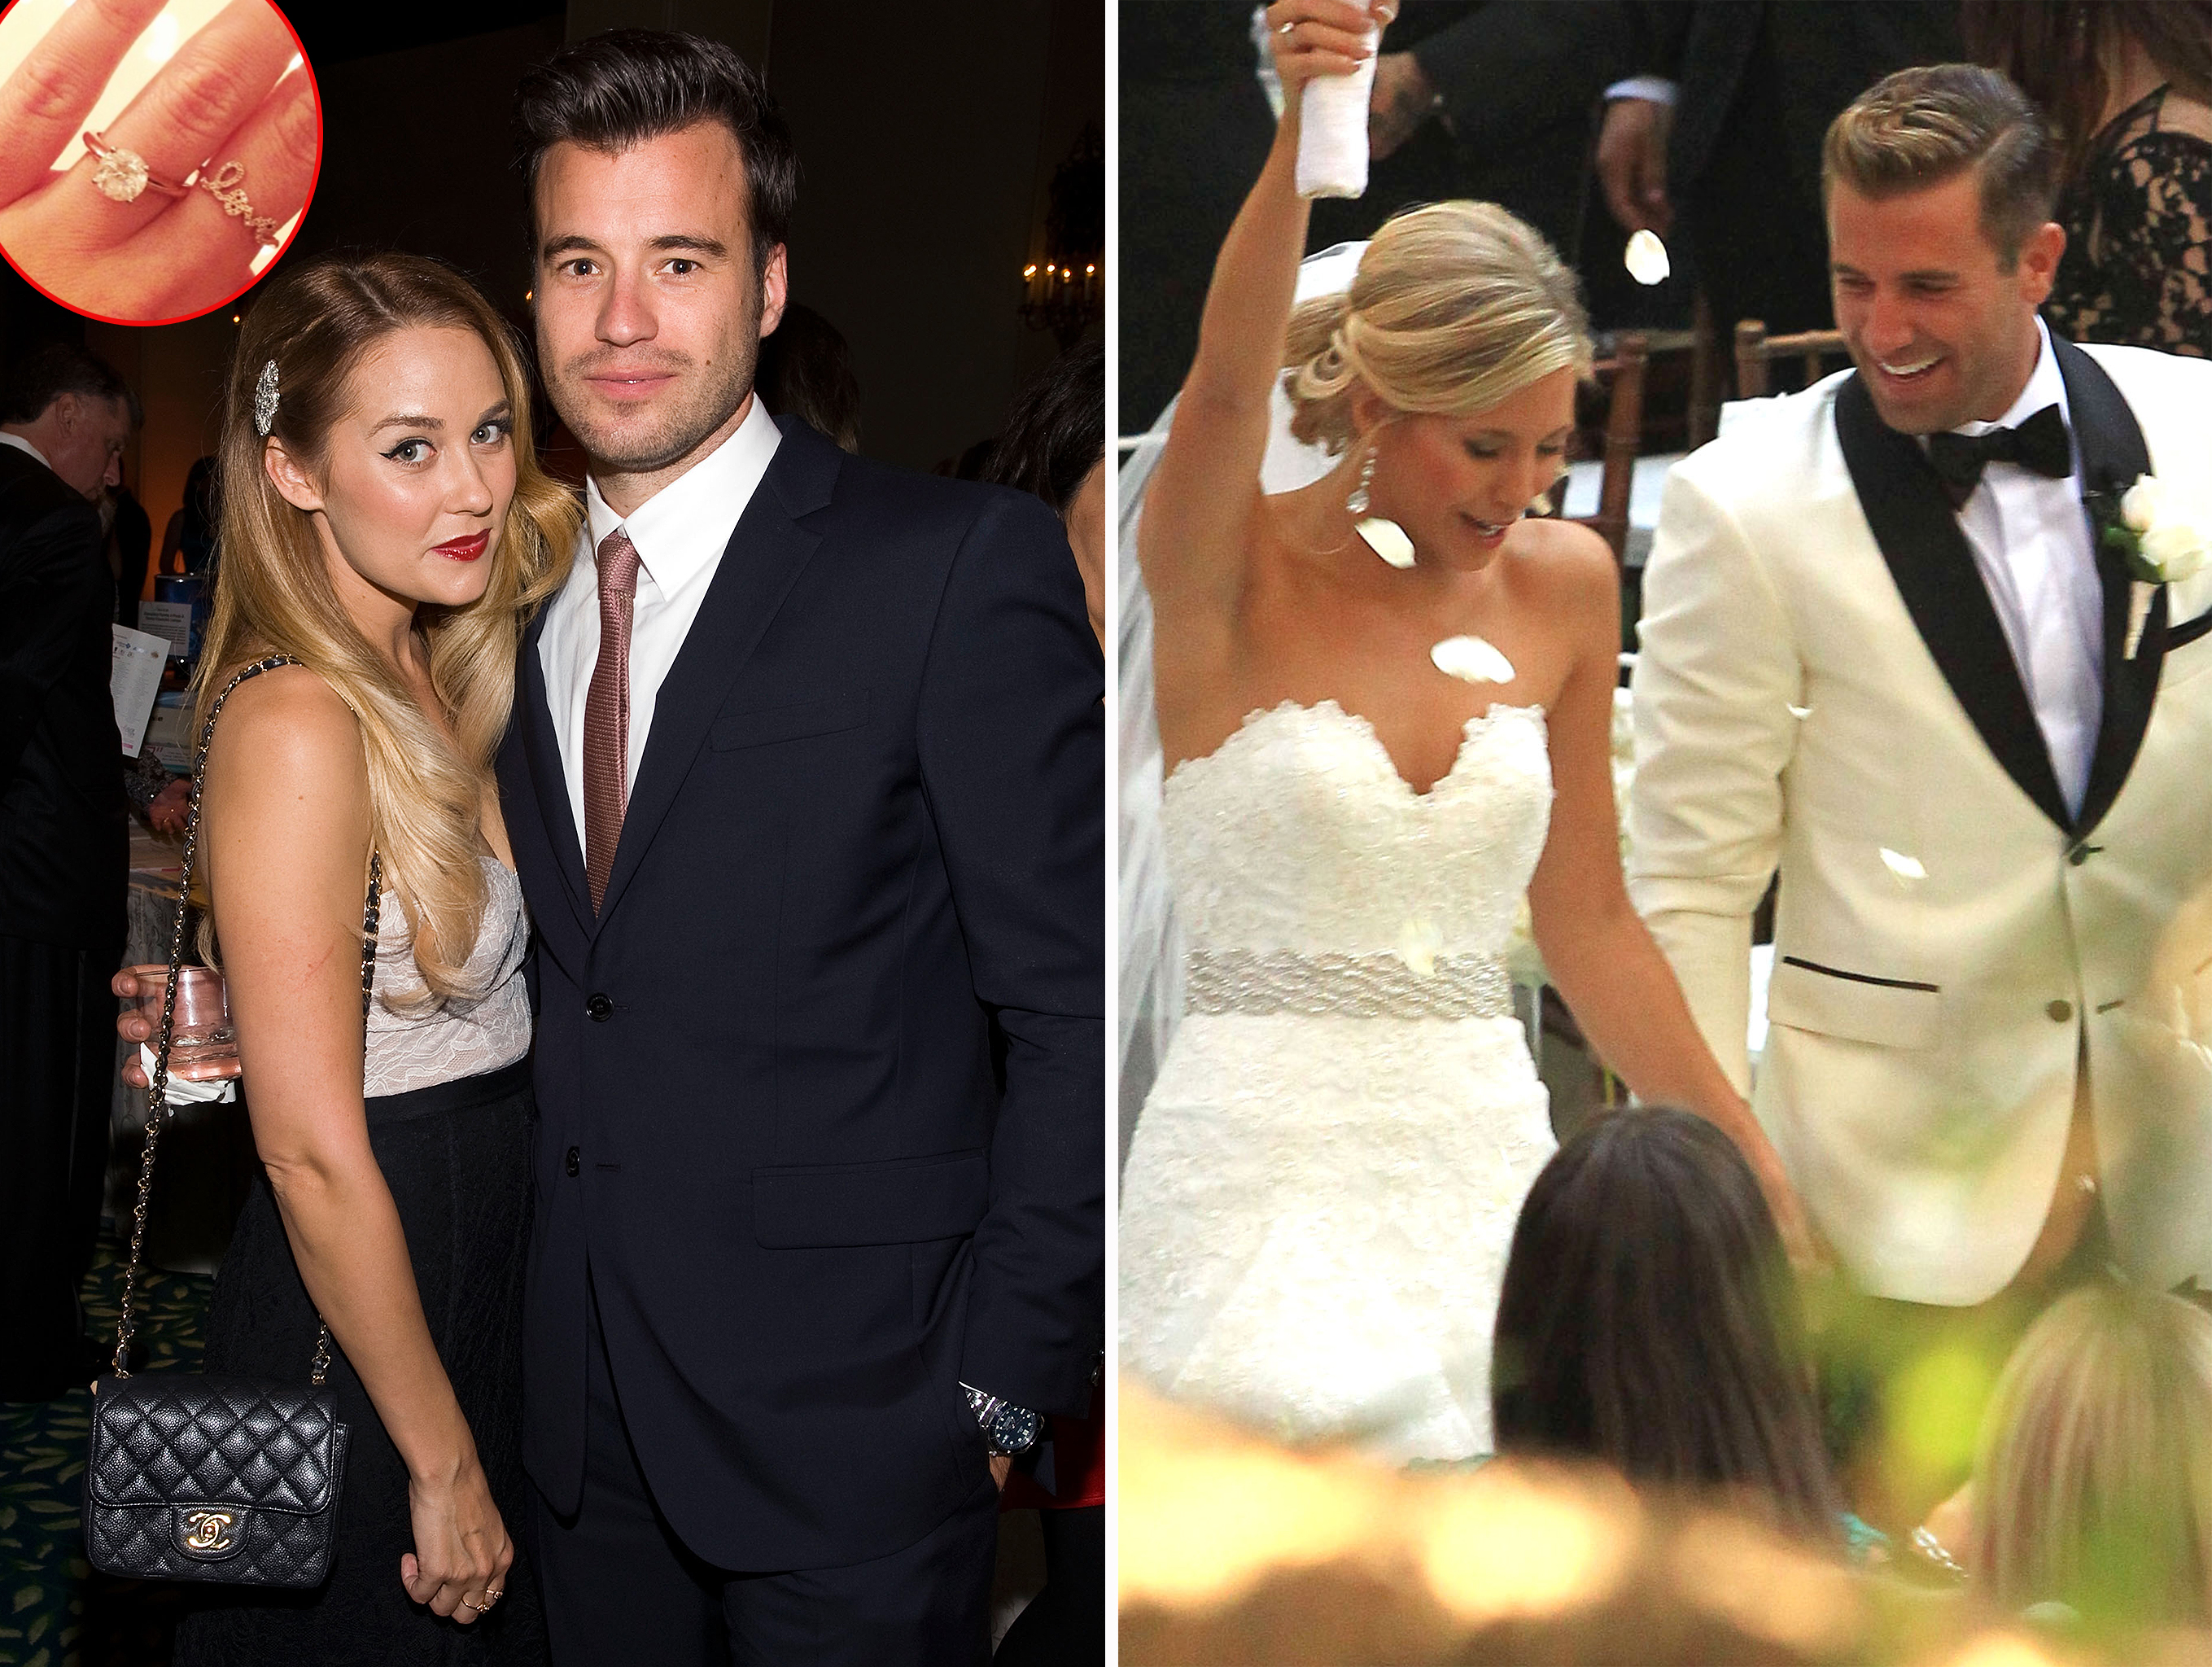 Lauren Conrad and William Tell (and her engagement ring) and Jason Wahler and Ashley Slack's wedding (WireImage/Instagram(inset)/FameFlynet)